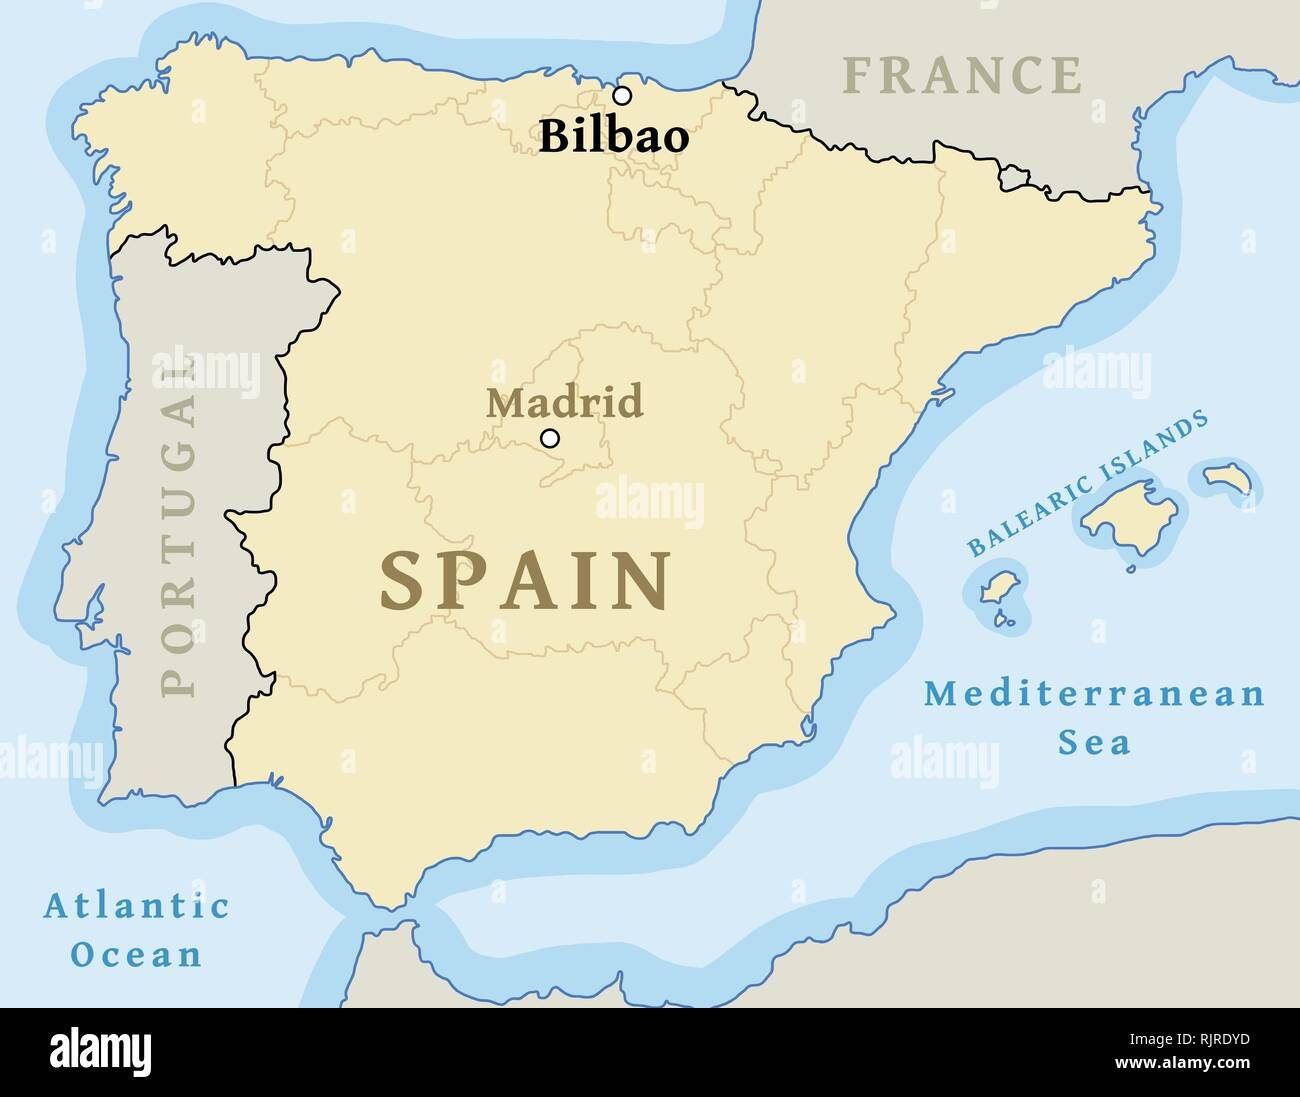 Bilbao On Map Of Spain.Bilbao Map Location Find City On Map Of Spain Vector Illustration